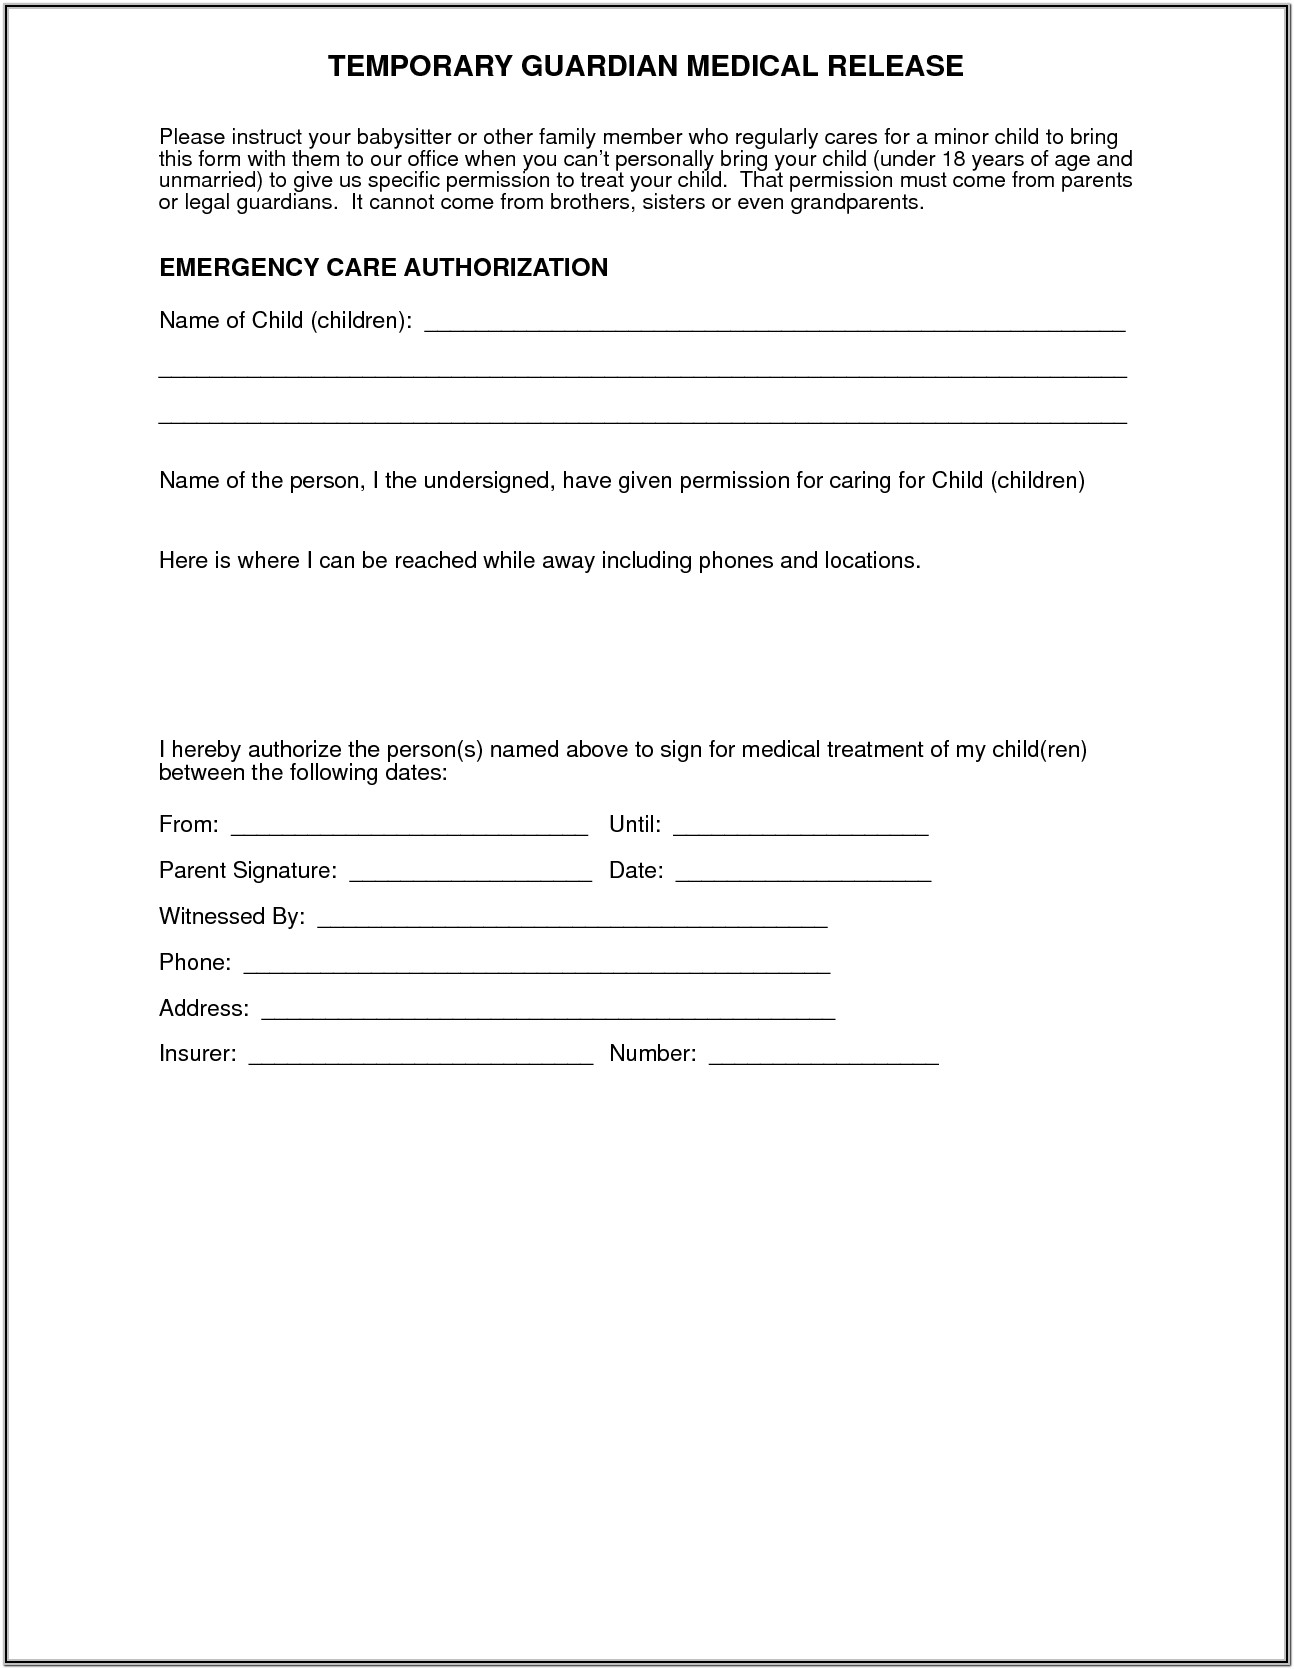 Temporary Guardian Medical Release Form